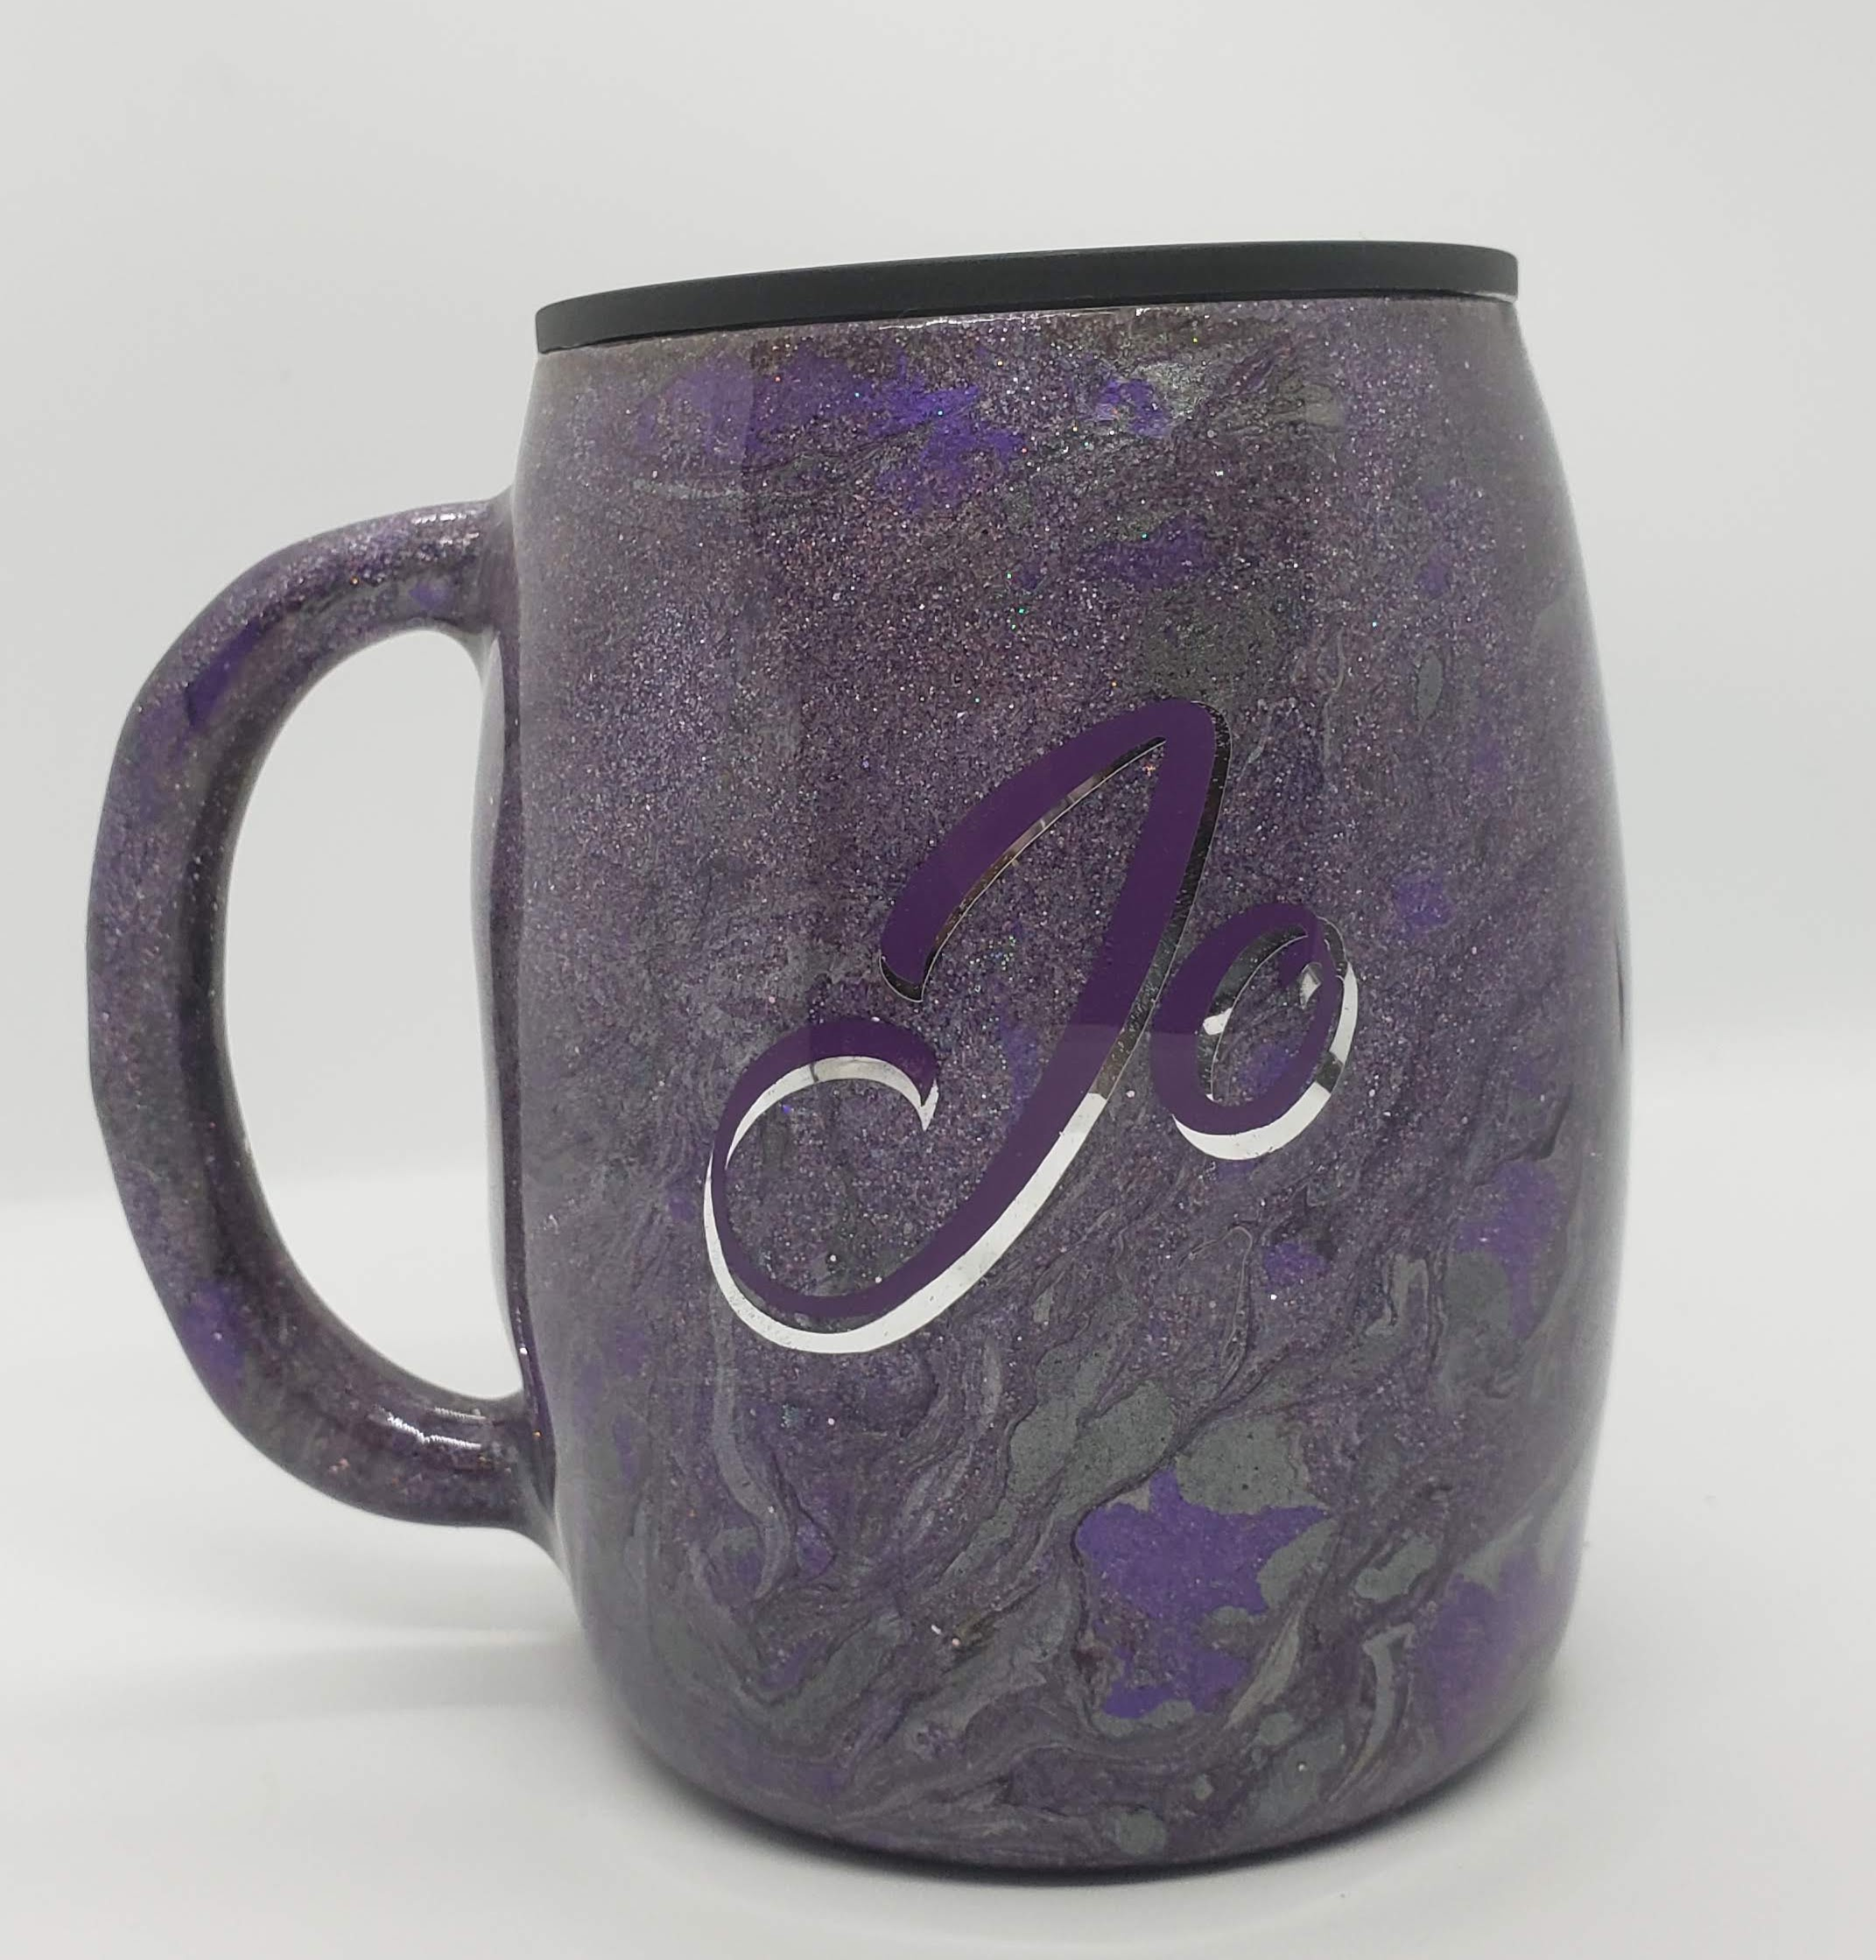 14oz Stainless steel coffee mug - glitte